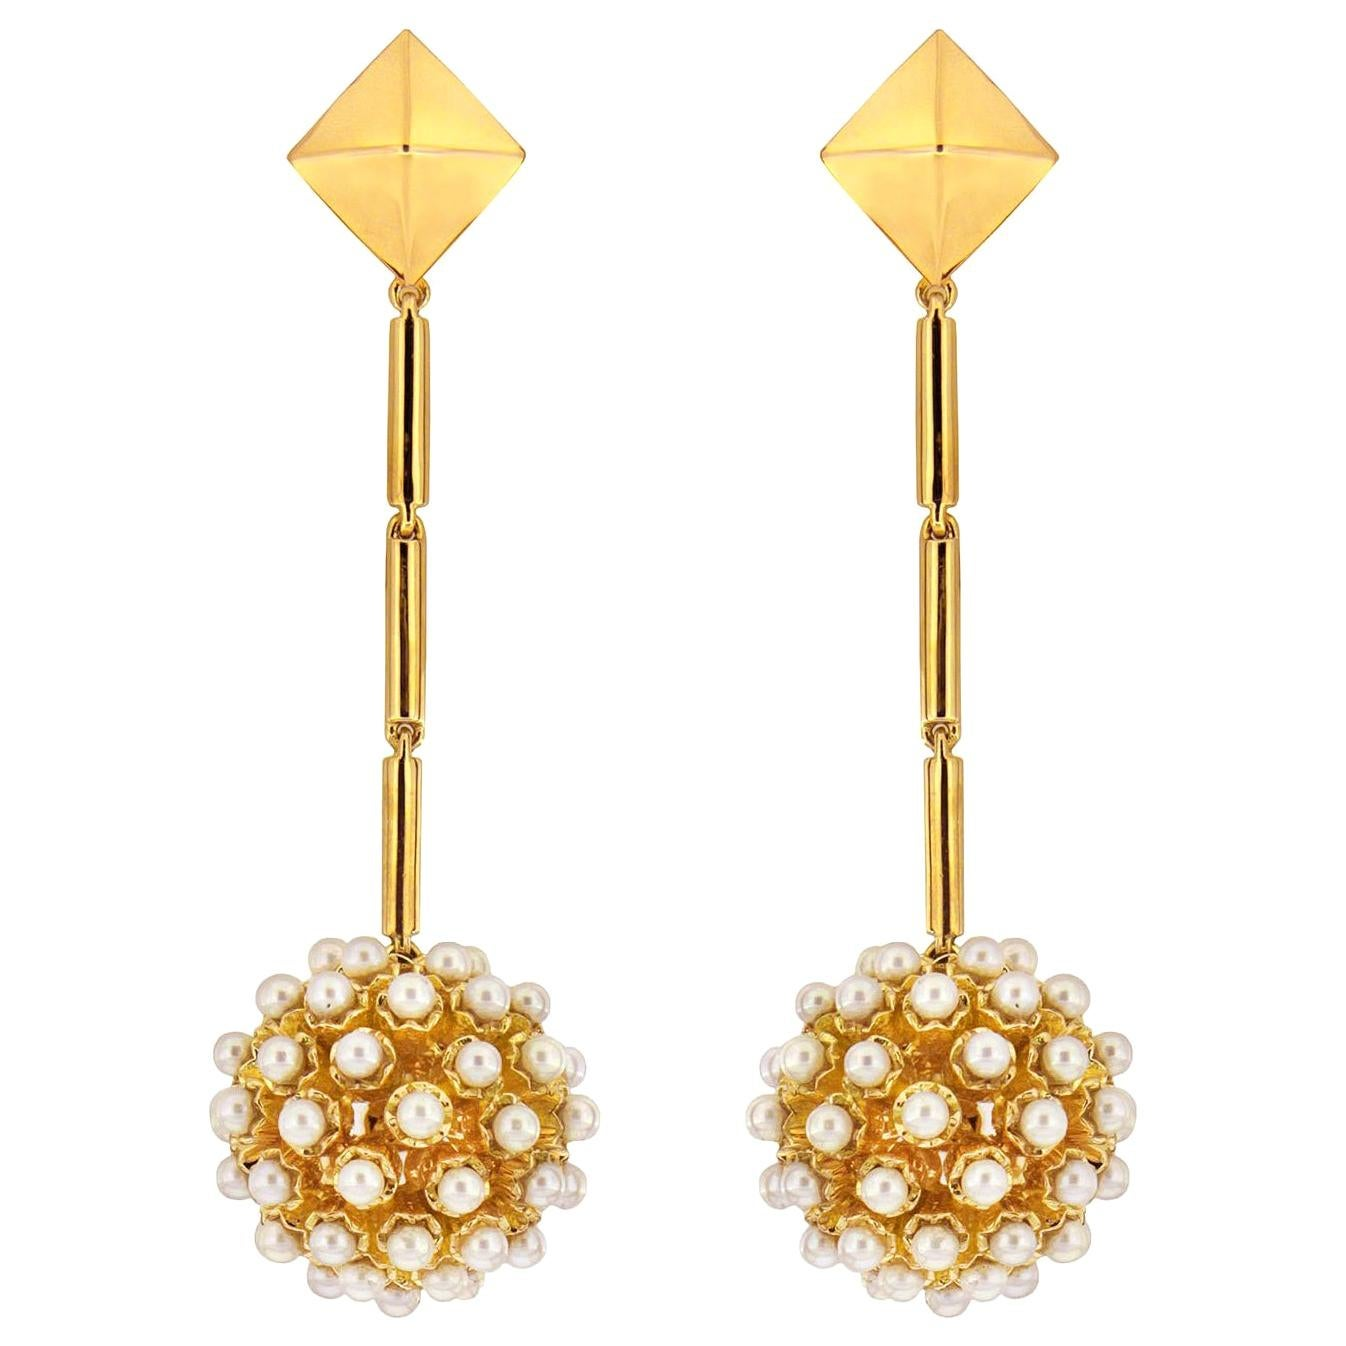 Valentin Magro Pearl Dangling Disco Ball and Gold Pyramid Top Earrings